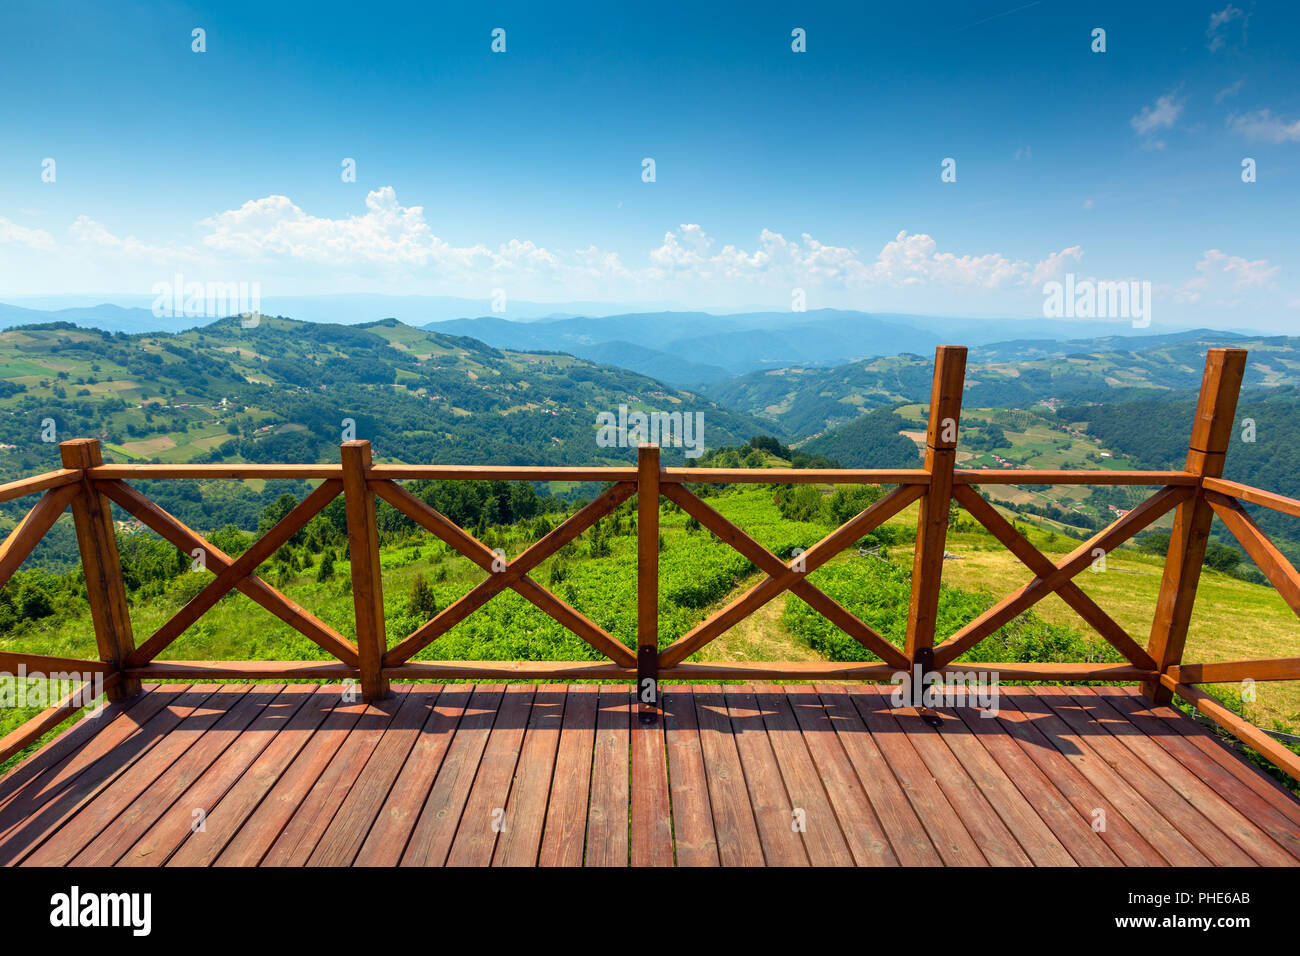 mountains landscape with viewpoint in Serbia - Stock Image